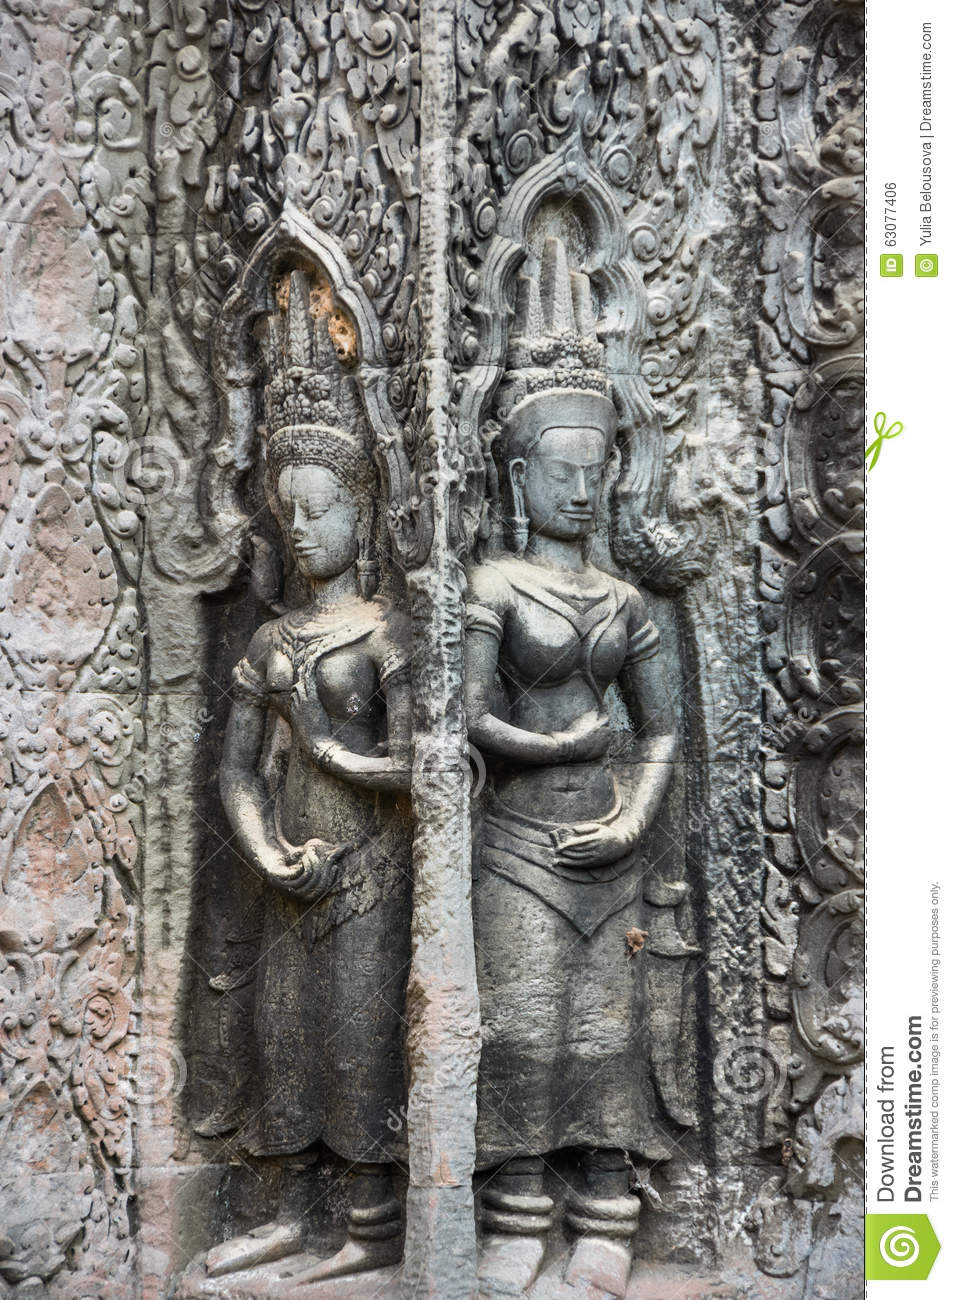 Download Une Statue De Bas-relief De Culture De Khmer Photo stock - Image du sculpture, cambodia: 63077406